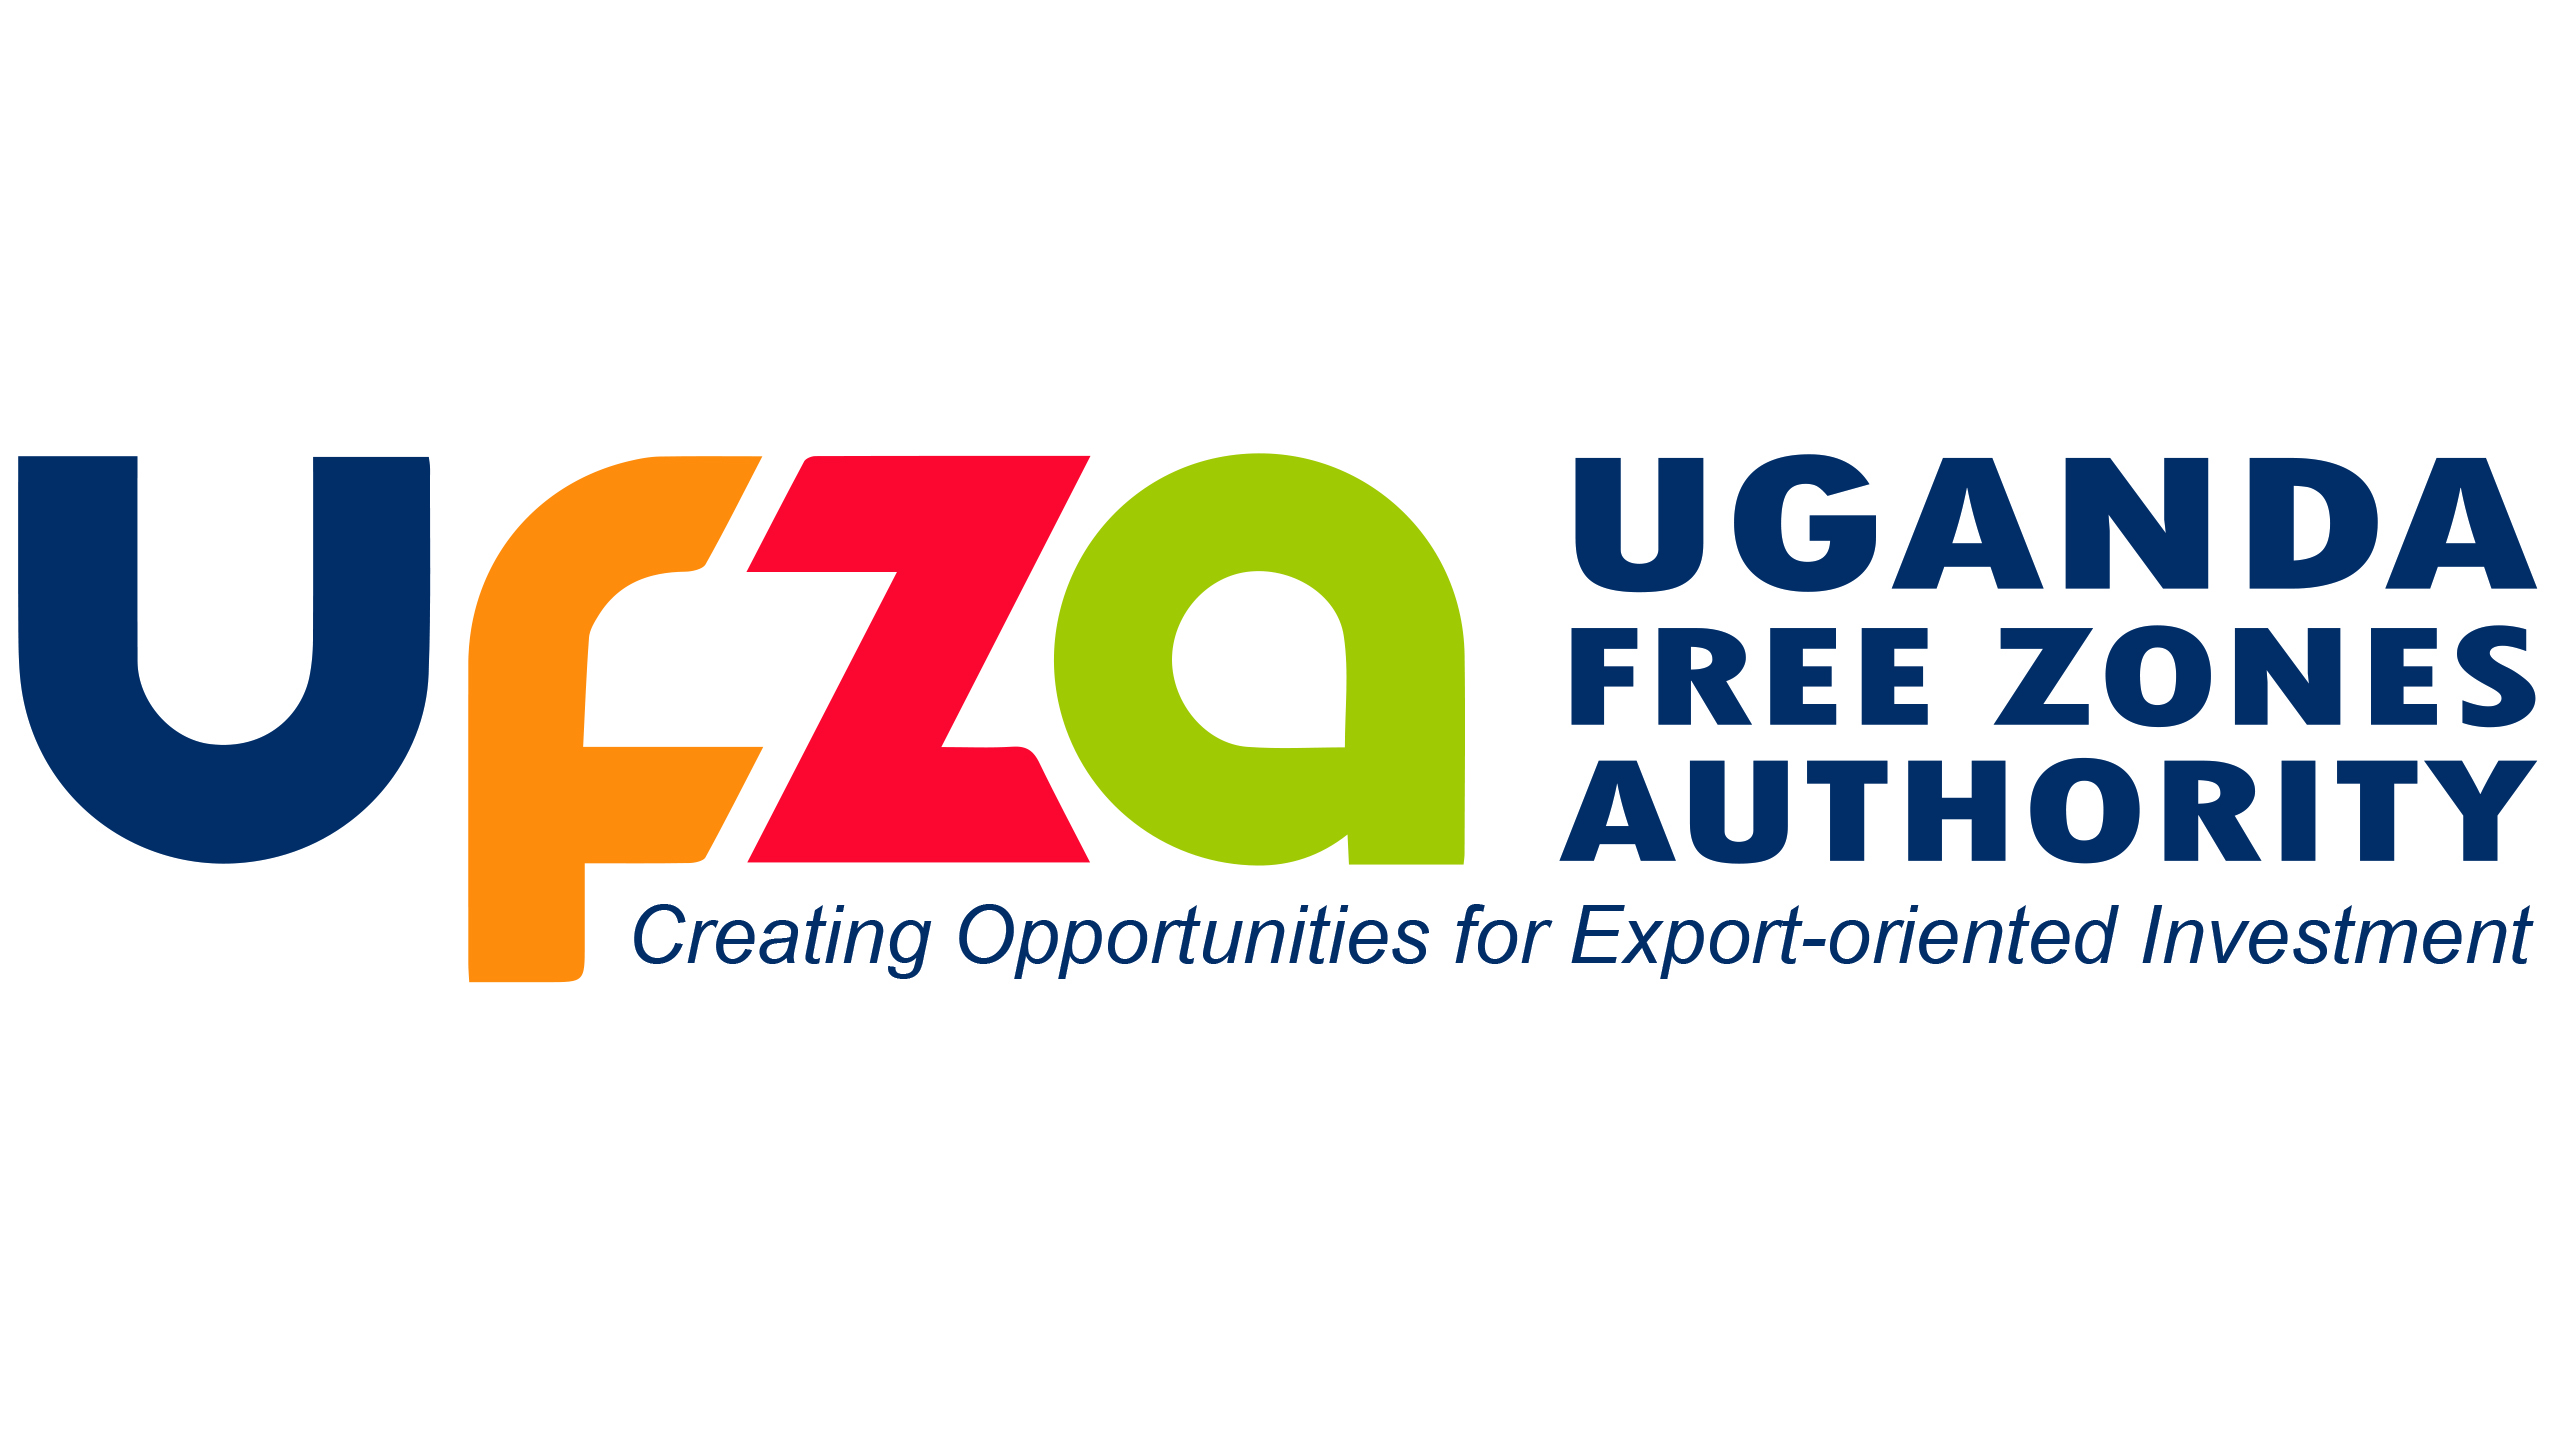 Creating Opportunities for Export-oriented Investment